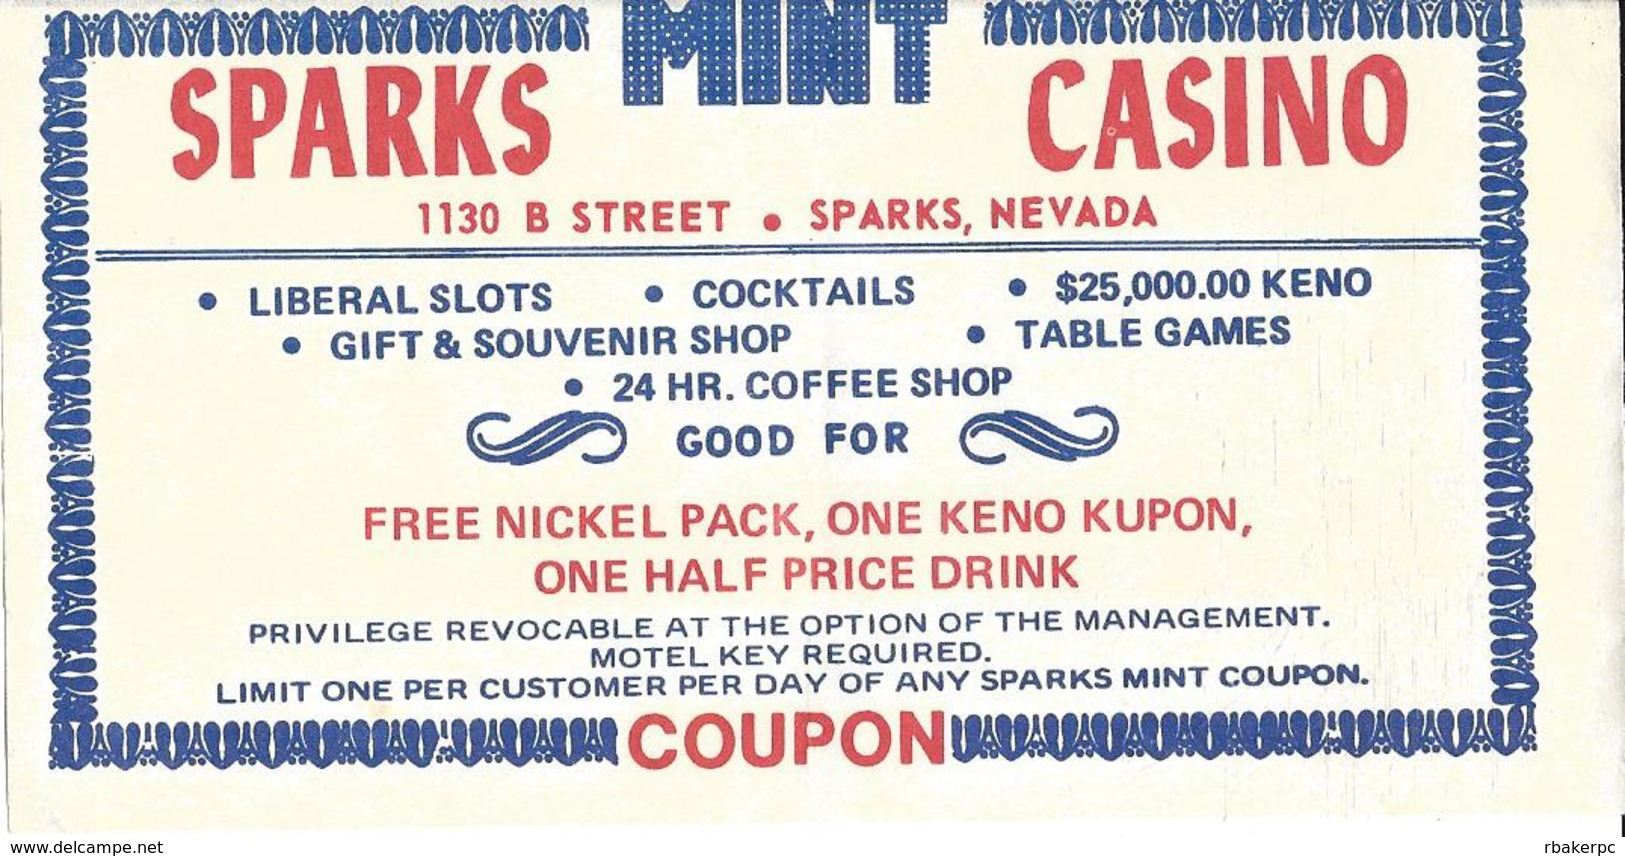 Sparks Mint Casino - Sparks, NV - Paper Coupon For Free Nickel Pack, One Keno Kupon & One Half Price Drink - Advertising